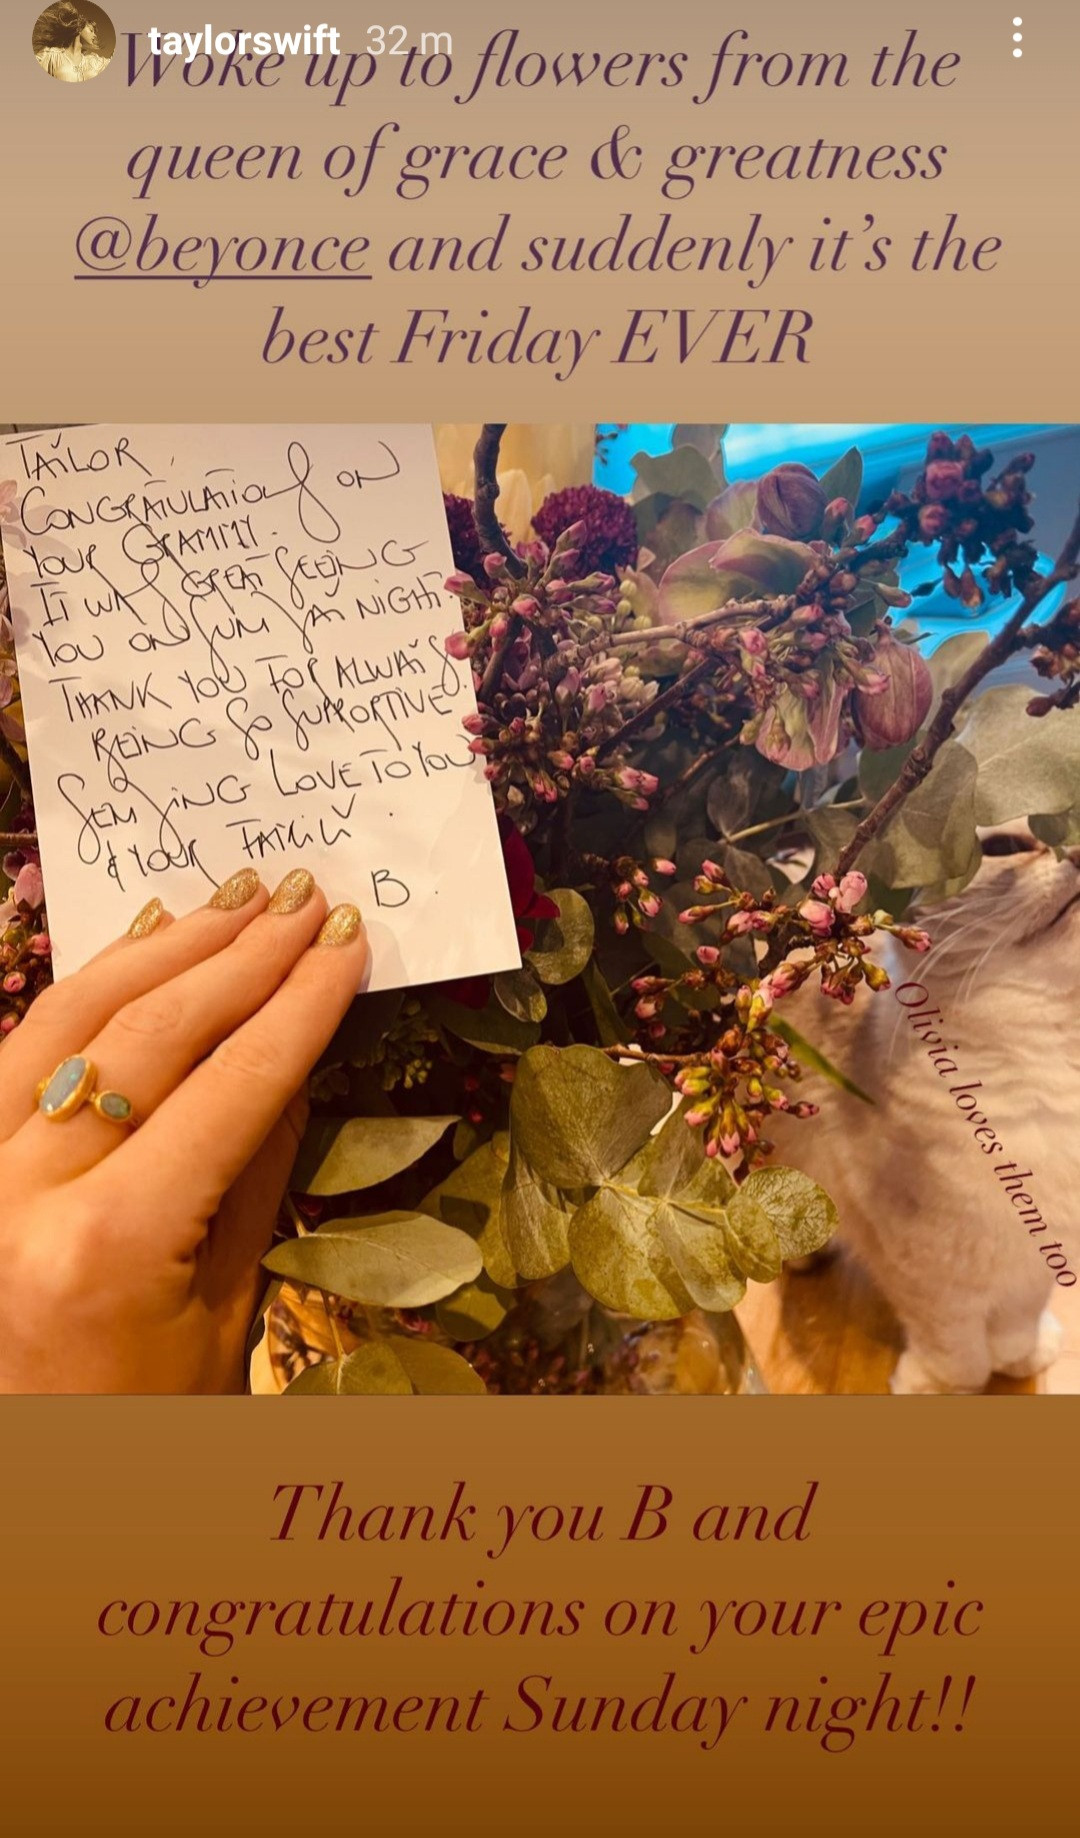 Taylor Swift shows the thoughtful gift and letter Beyonc? sent to her